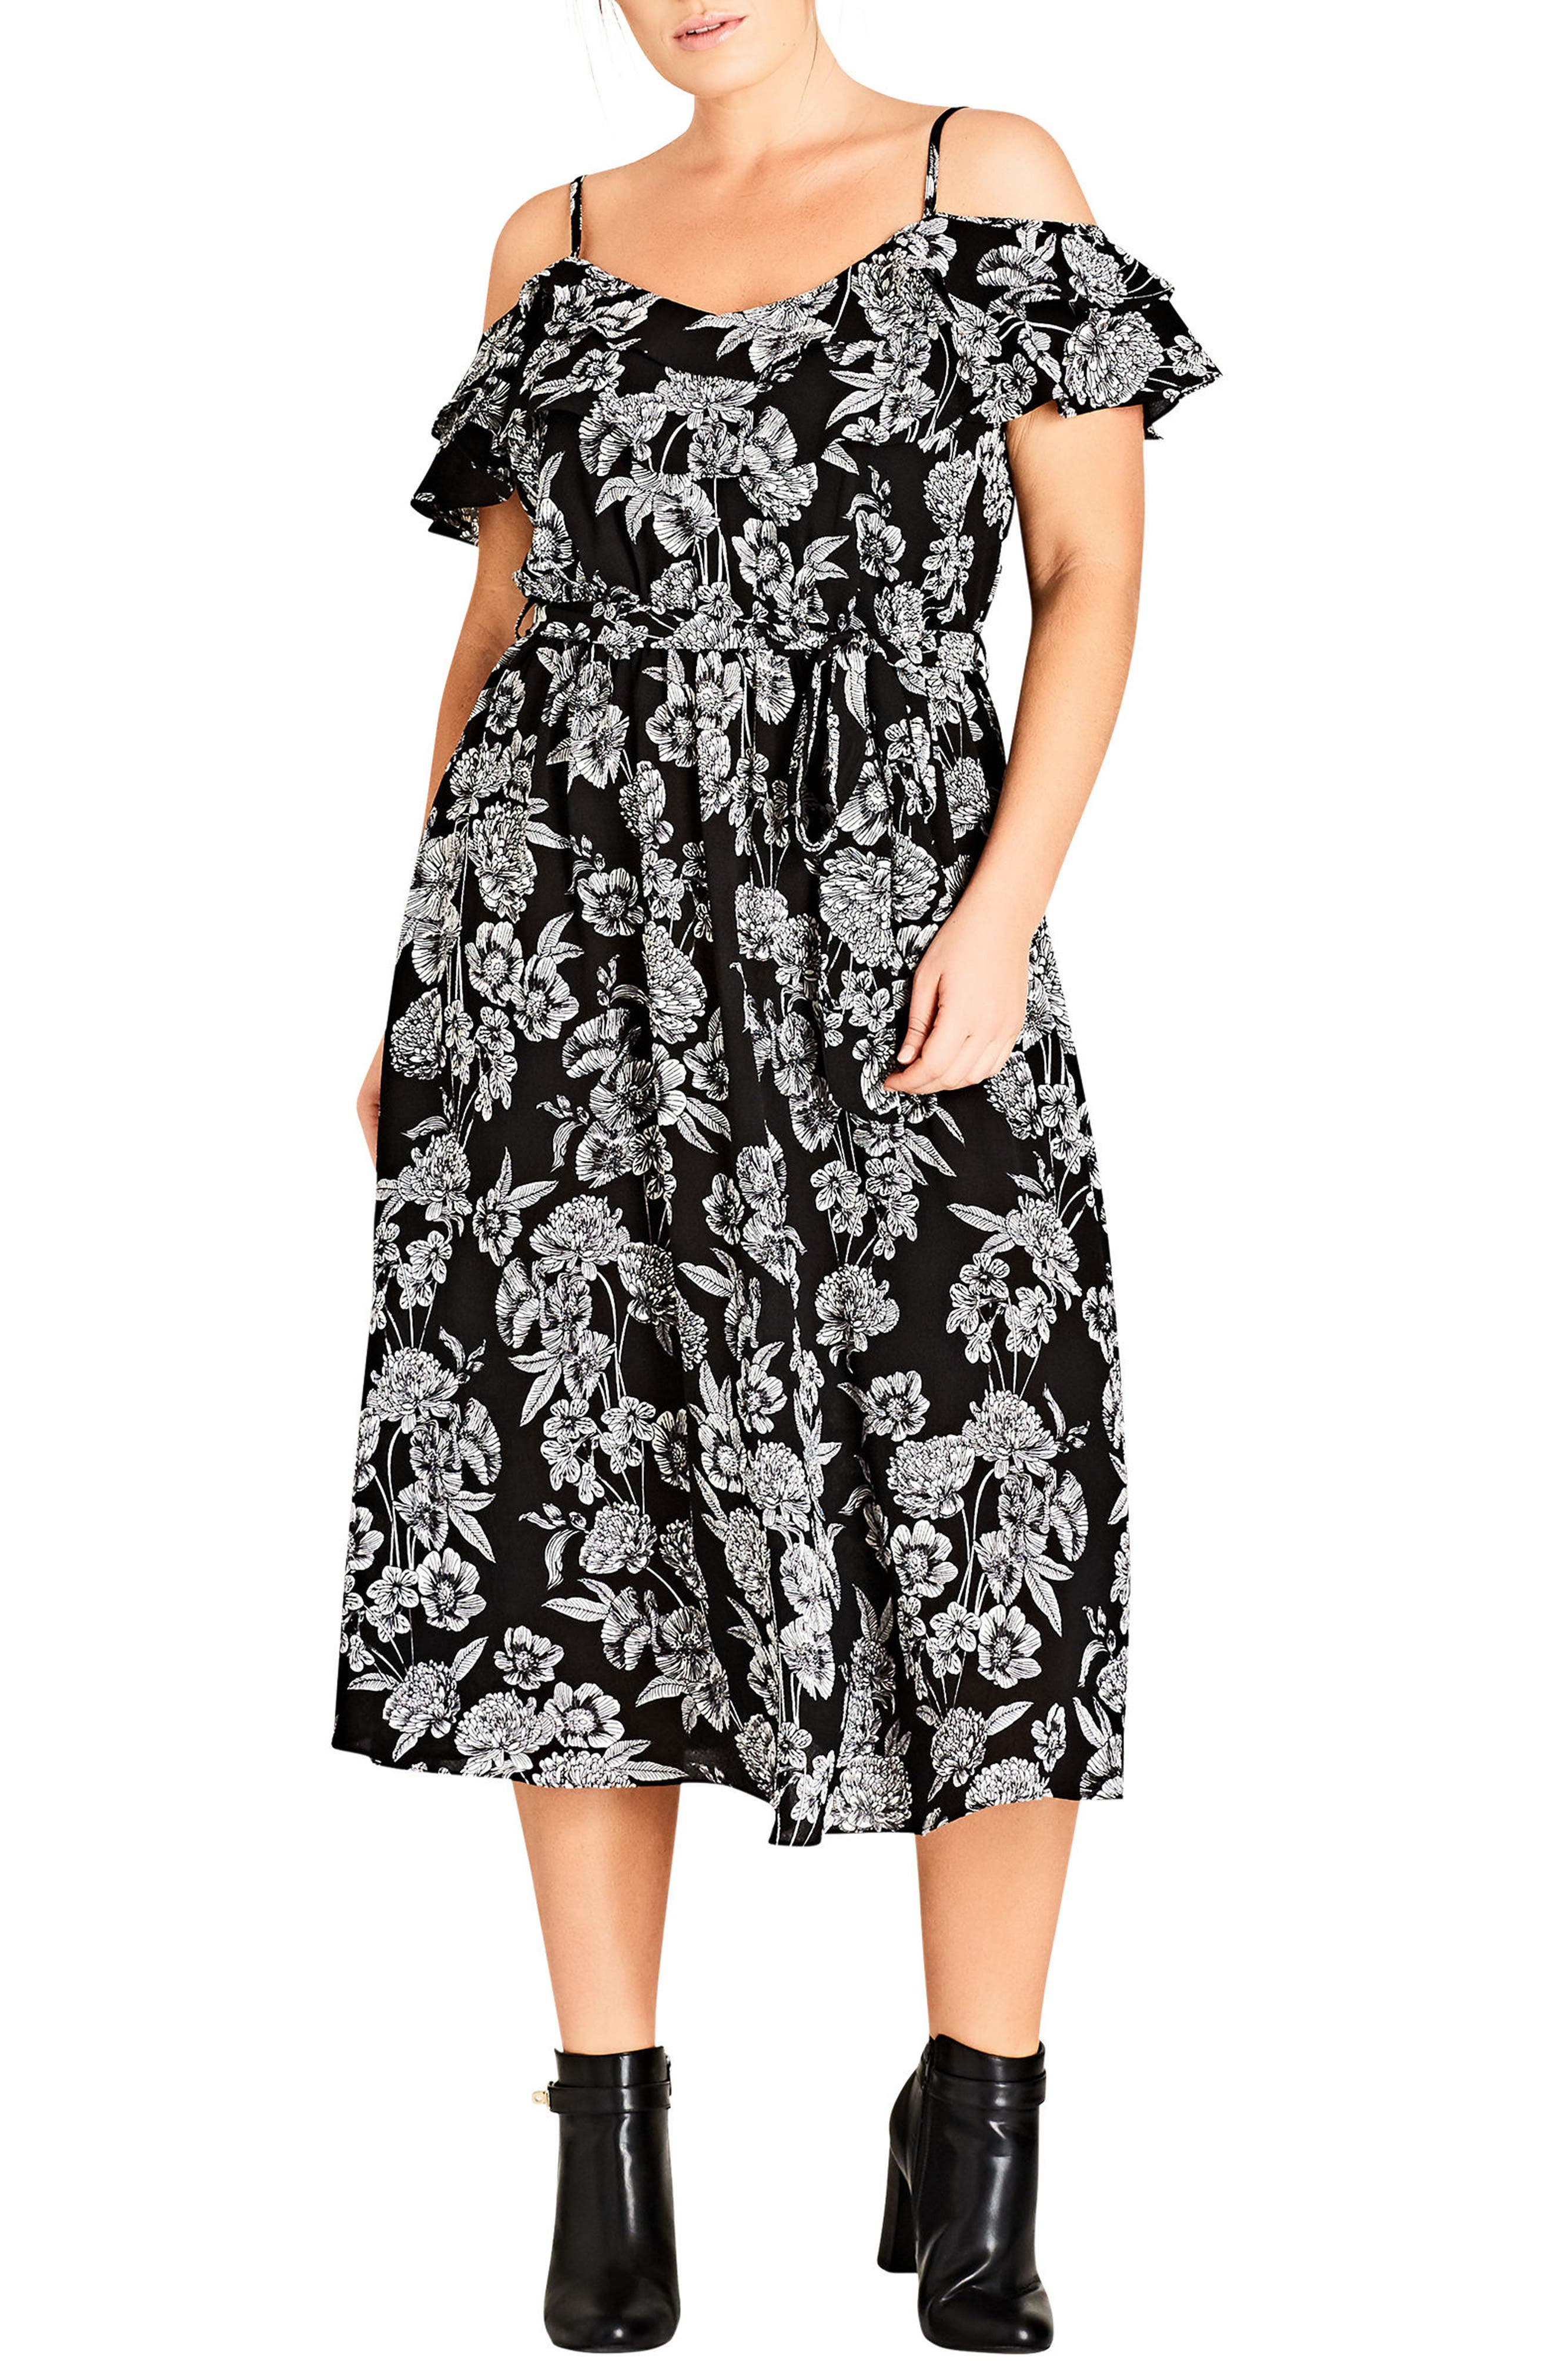 Bloomsbury Midi Dress,                         Main,                         color, 001